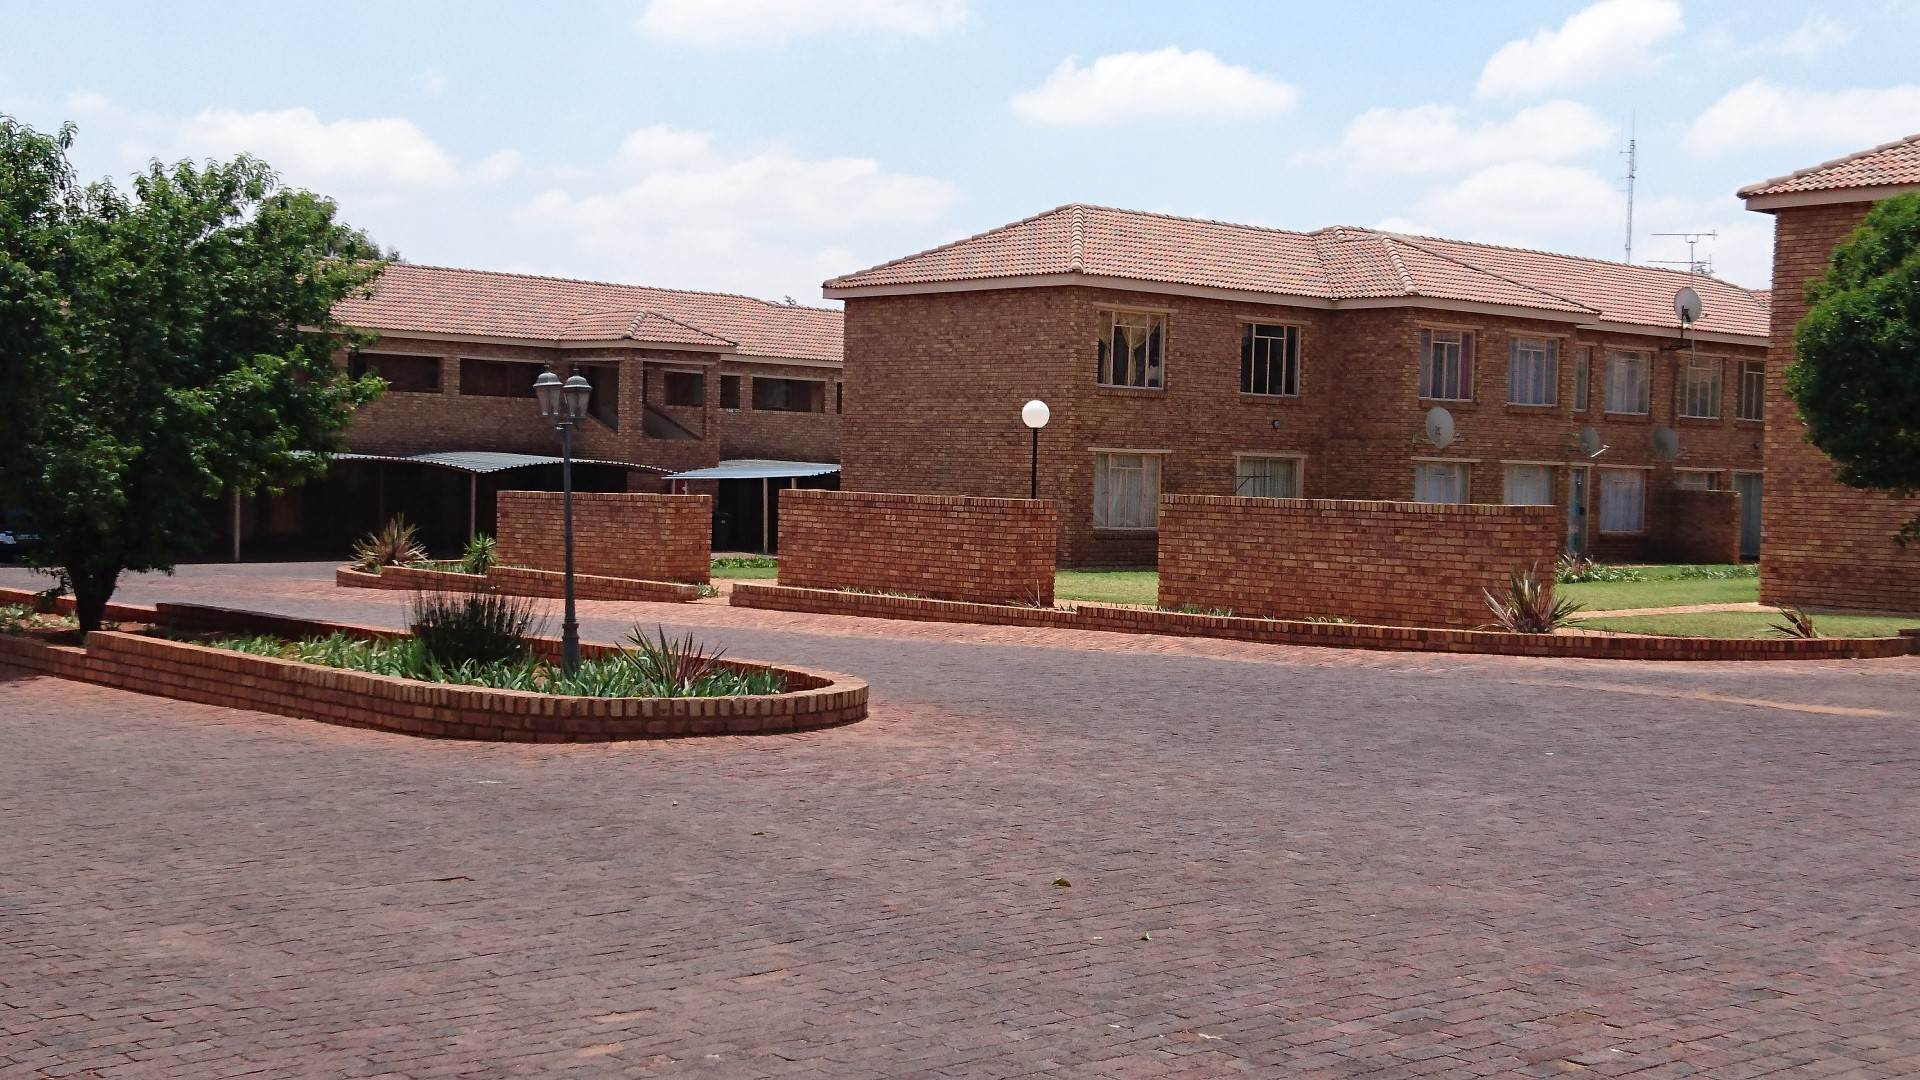 2 BedroomApartment For Sale In Krugersrus & Ext